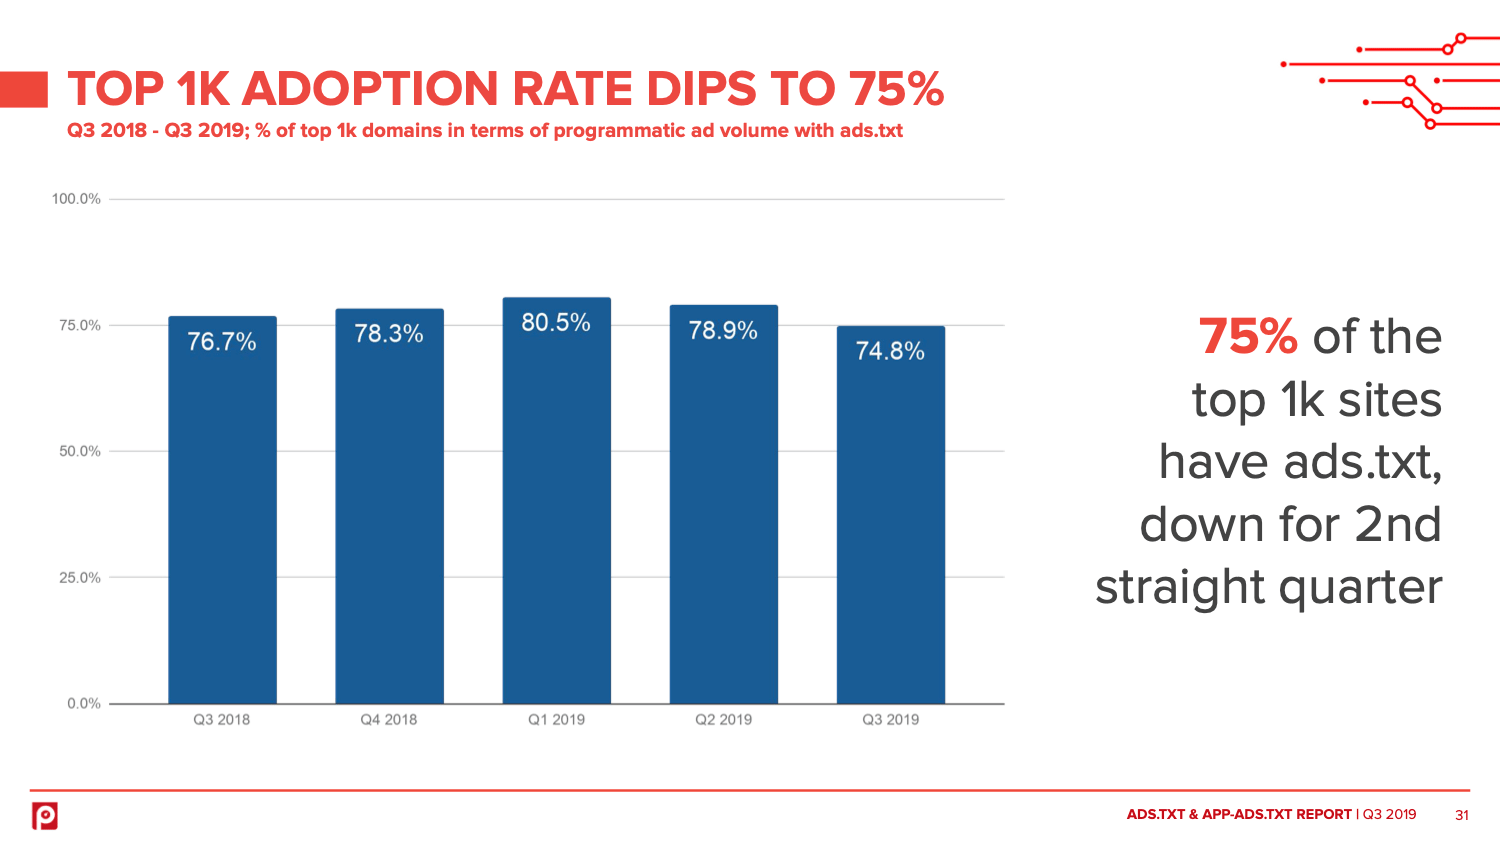 Ads.txt adoption rate dips for top sites